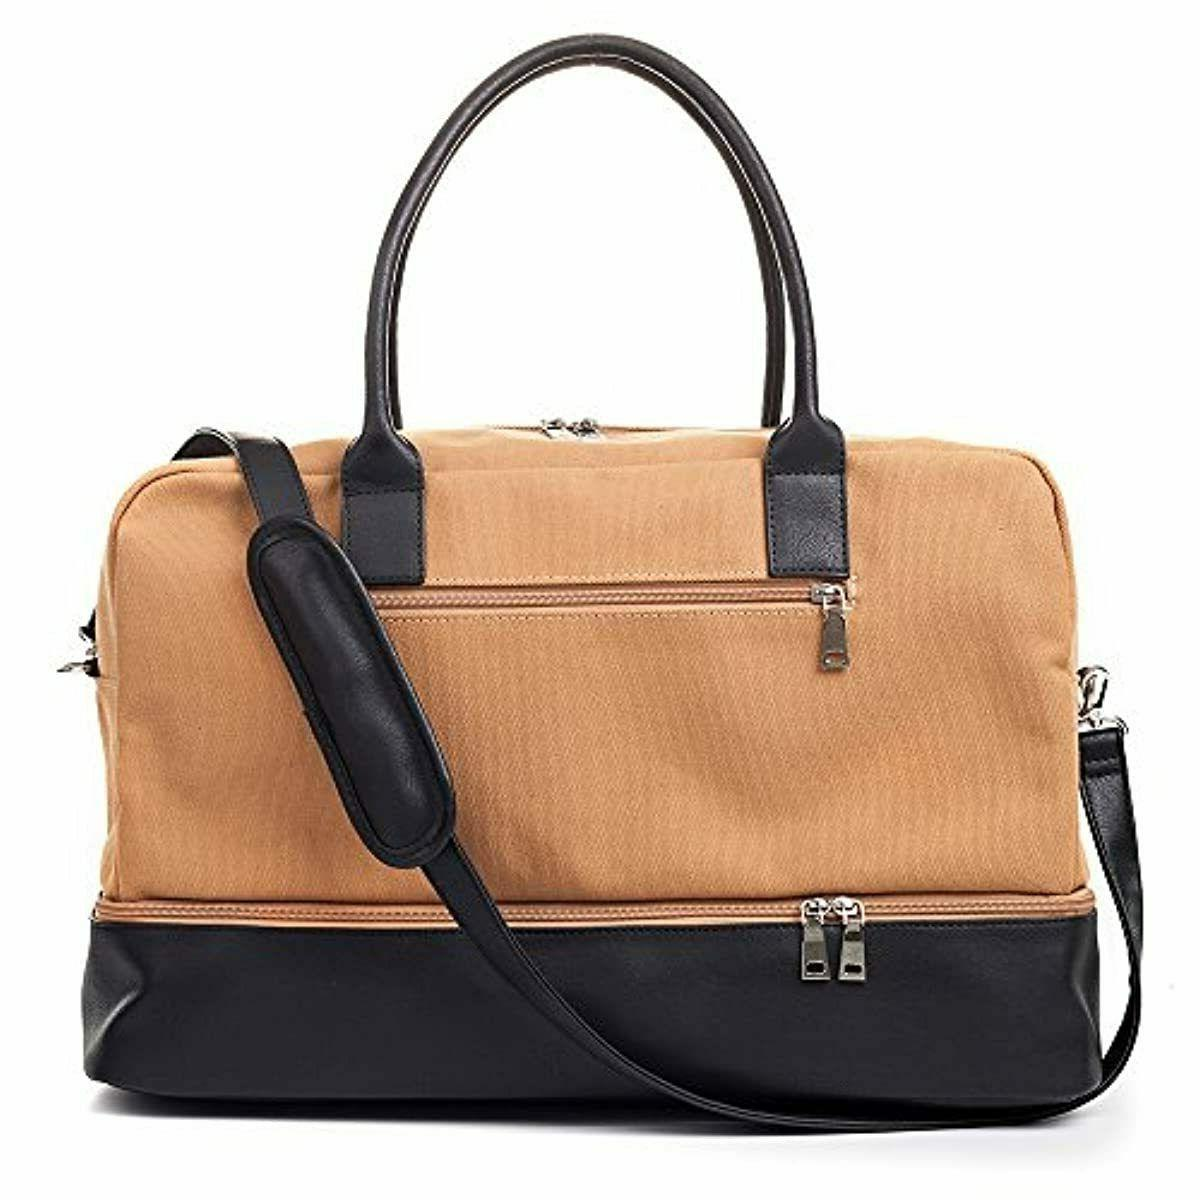 canvas weekender bag overnight travel carry on